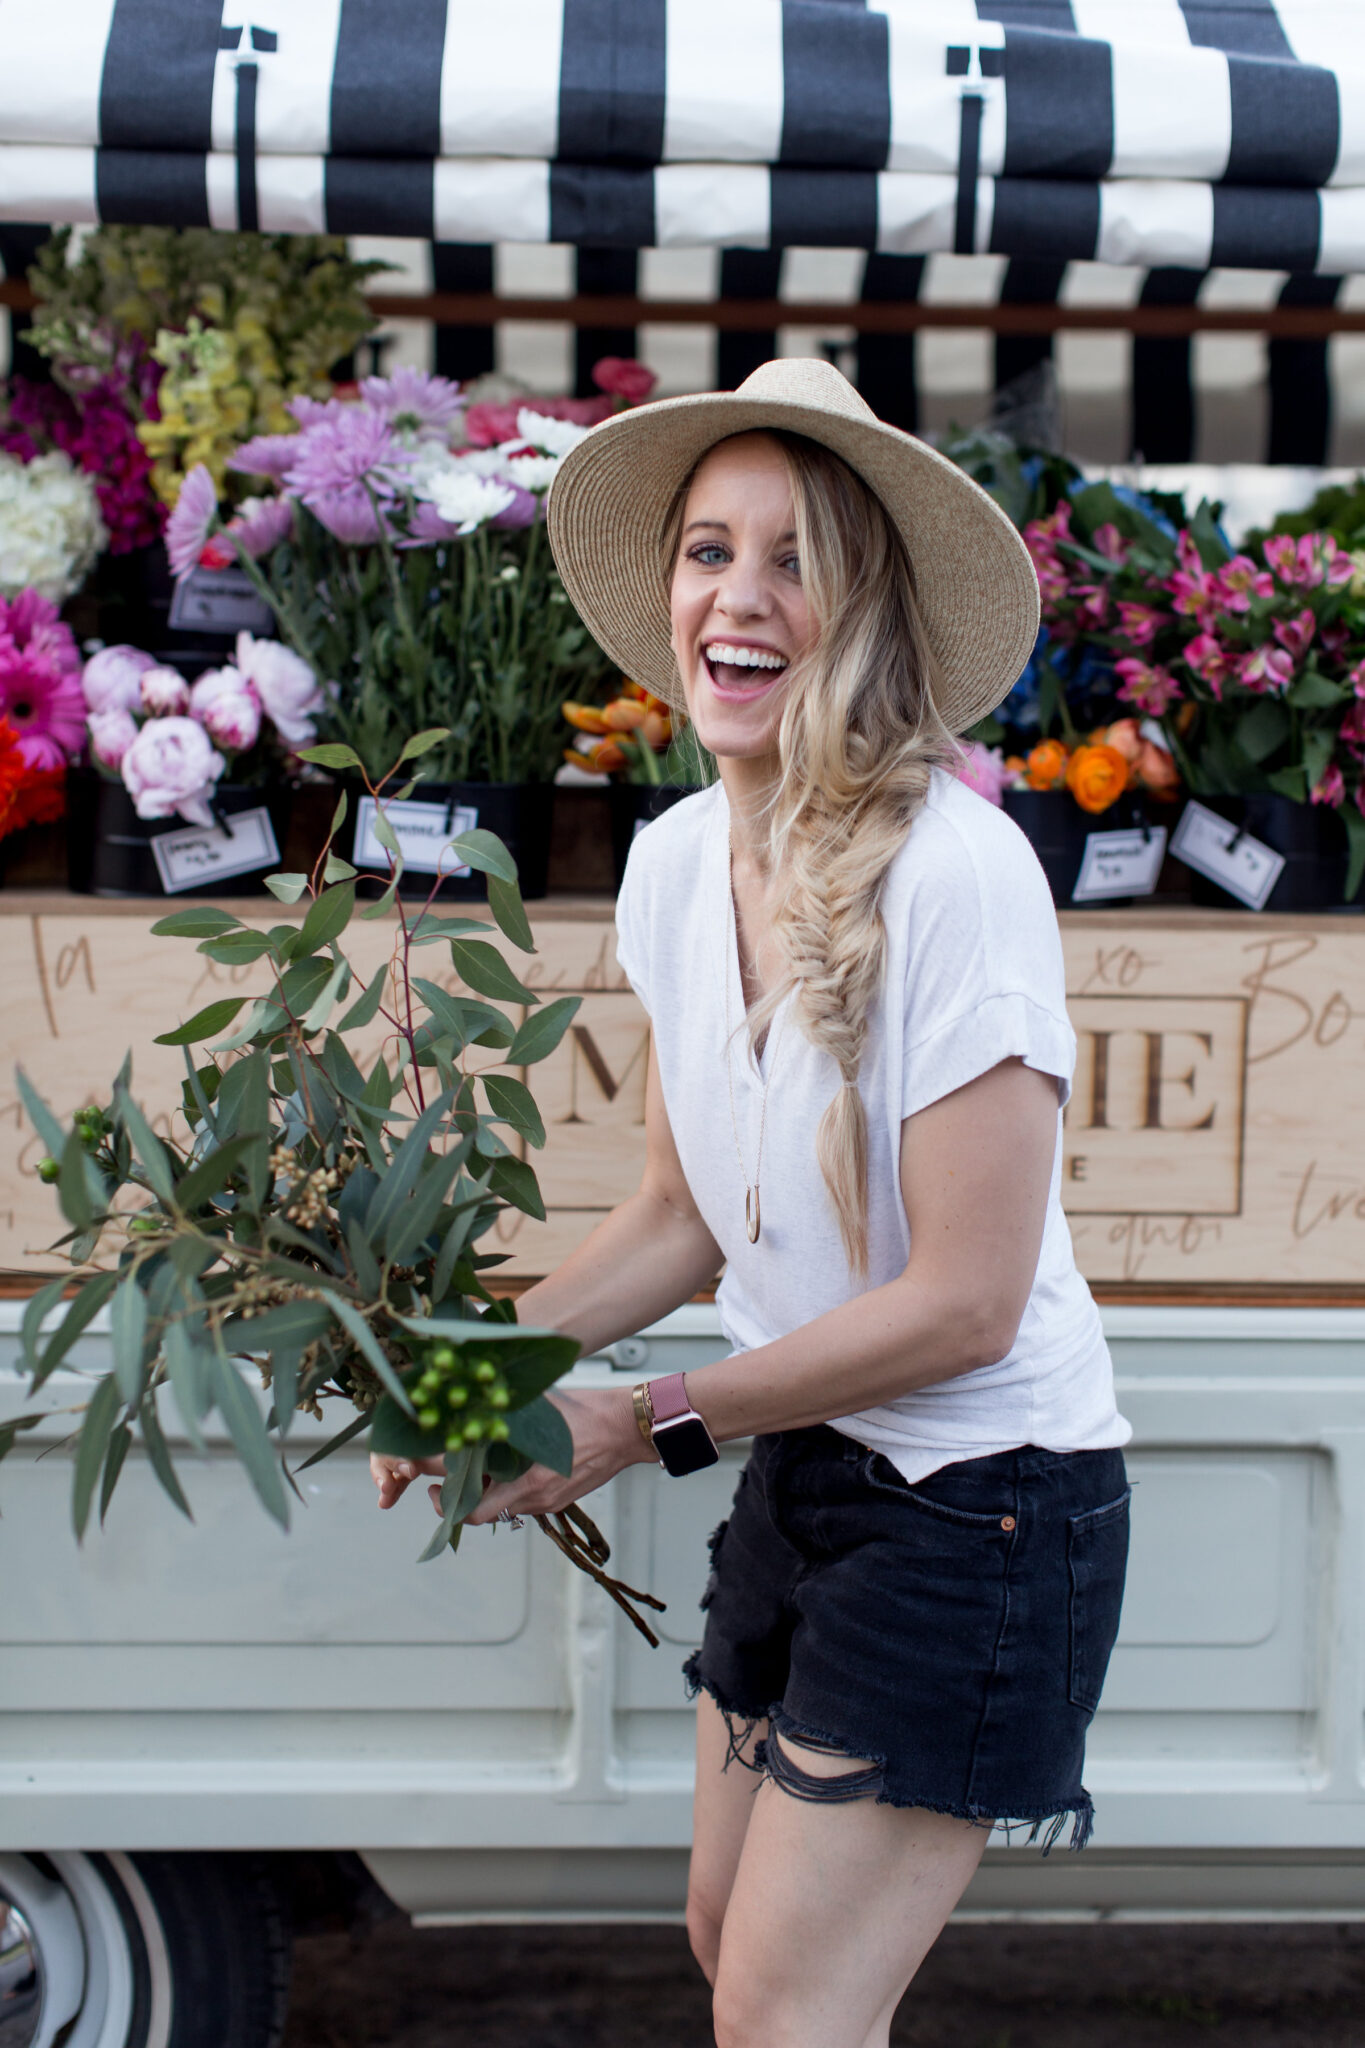 summer outfit for a casual day. blonde girl with fishtail braid and straw hat in front of majolie flower truck in black shorts, white top and black peep toe shoes